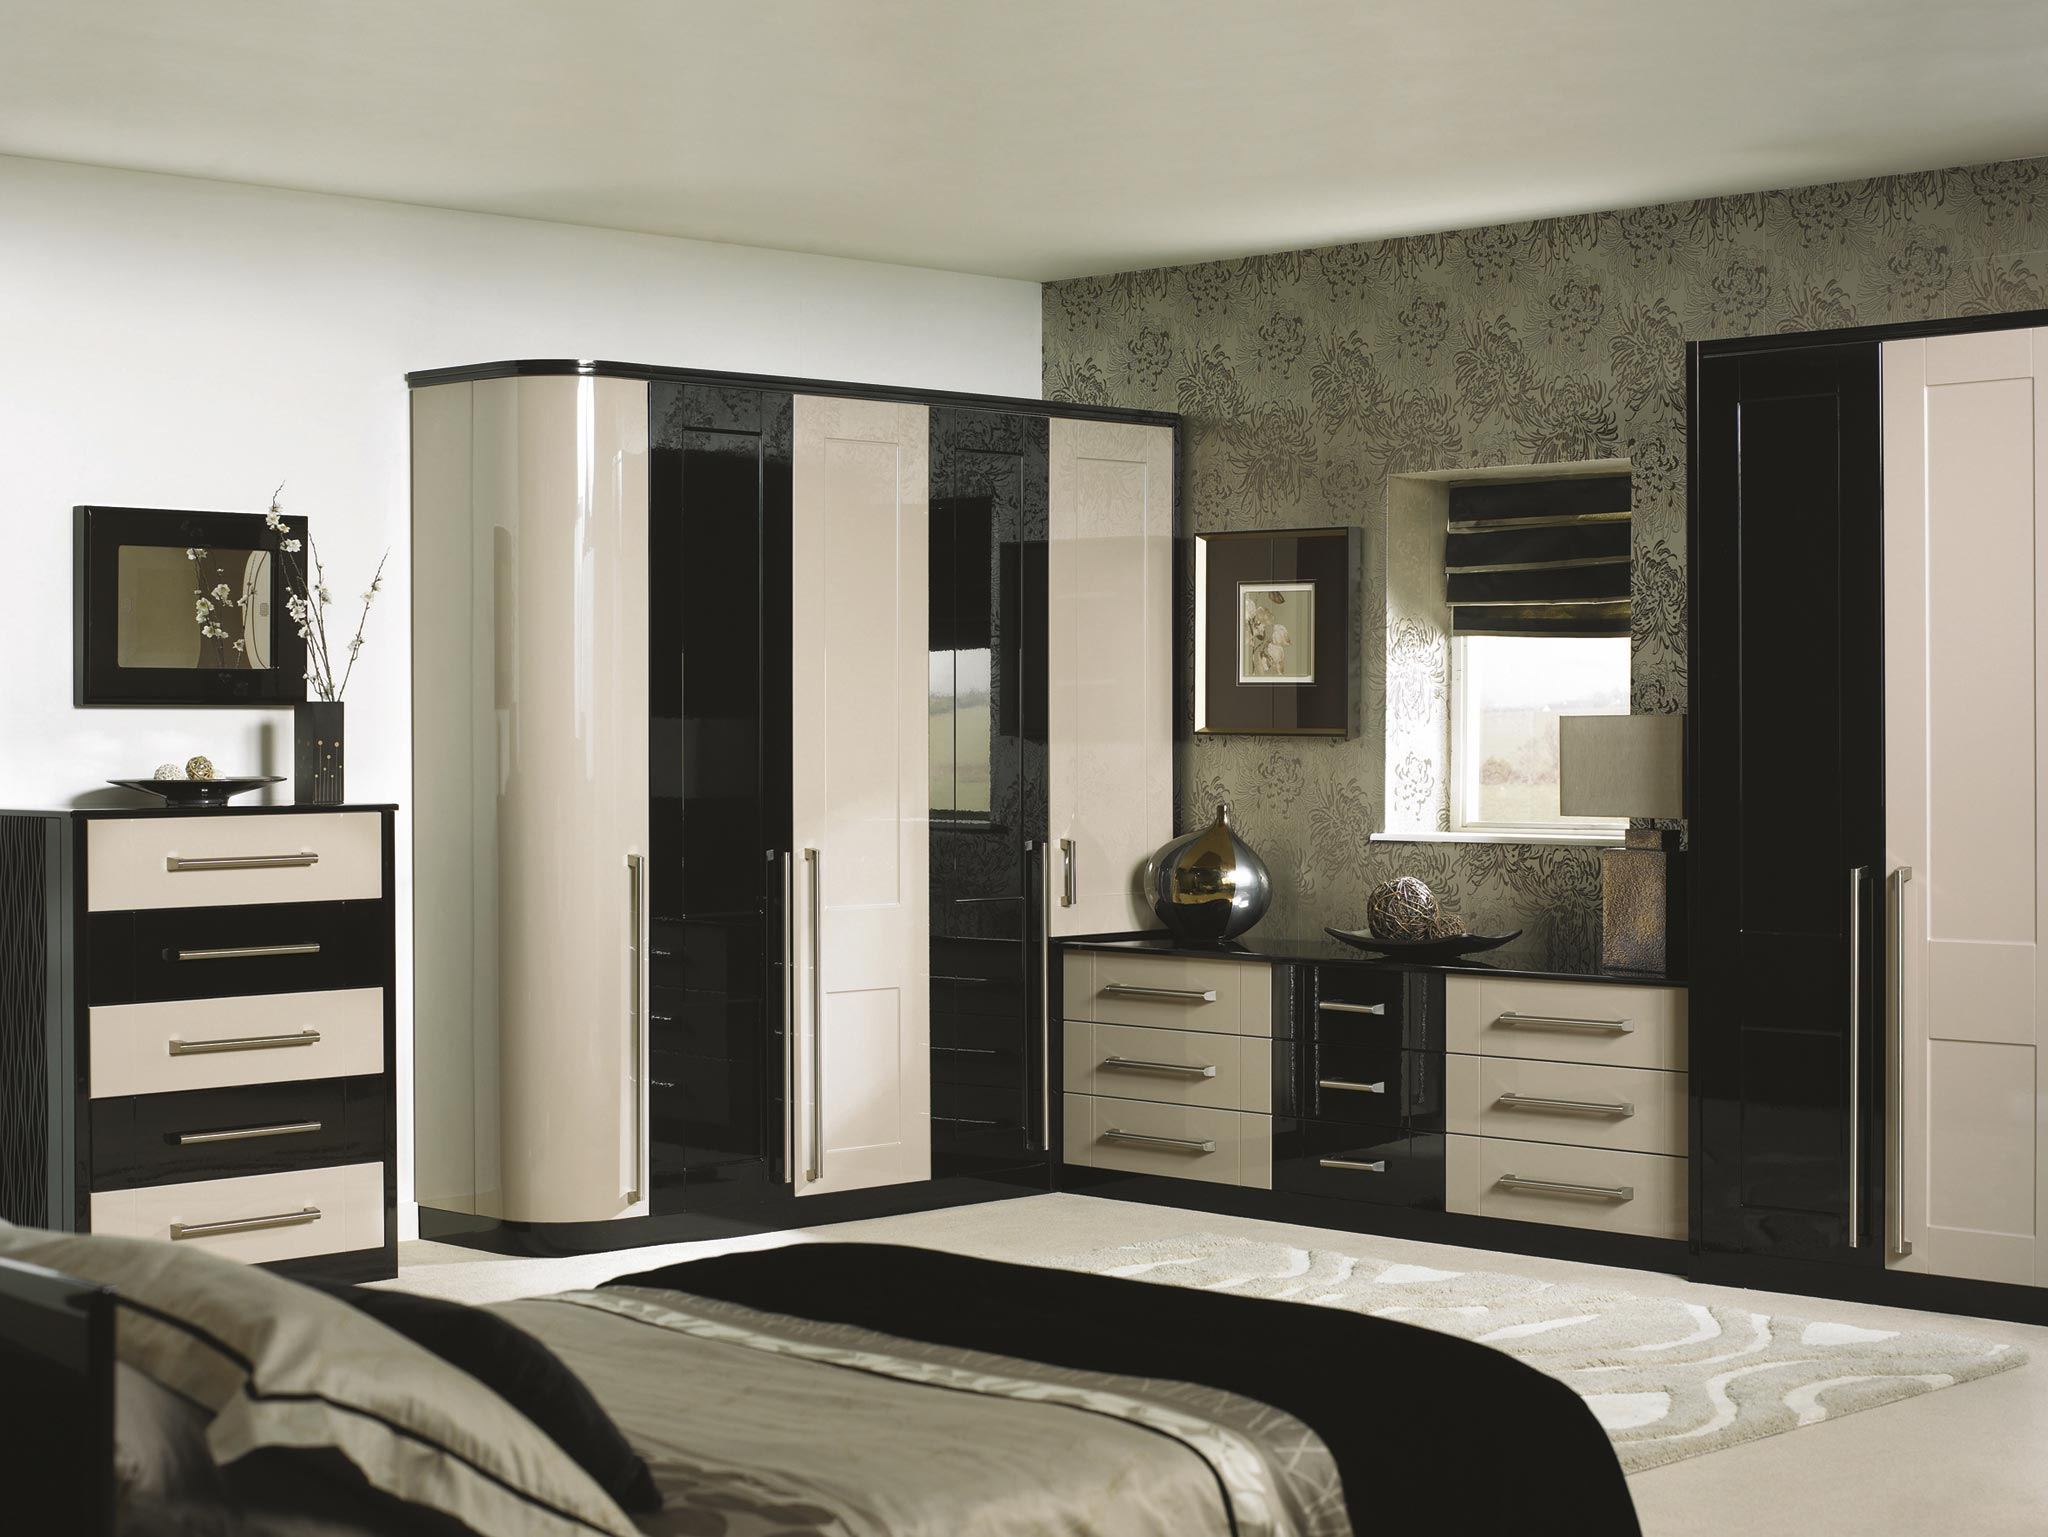 Bespoke bedrooms traditional modern supafit bedrooms for Cream and black bedroom designs